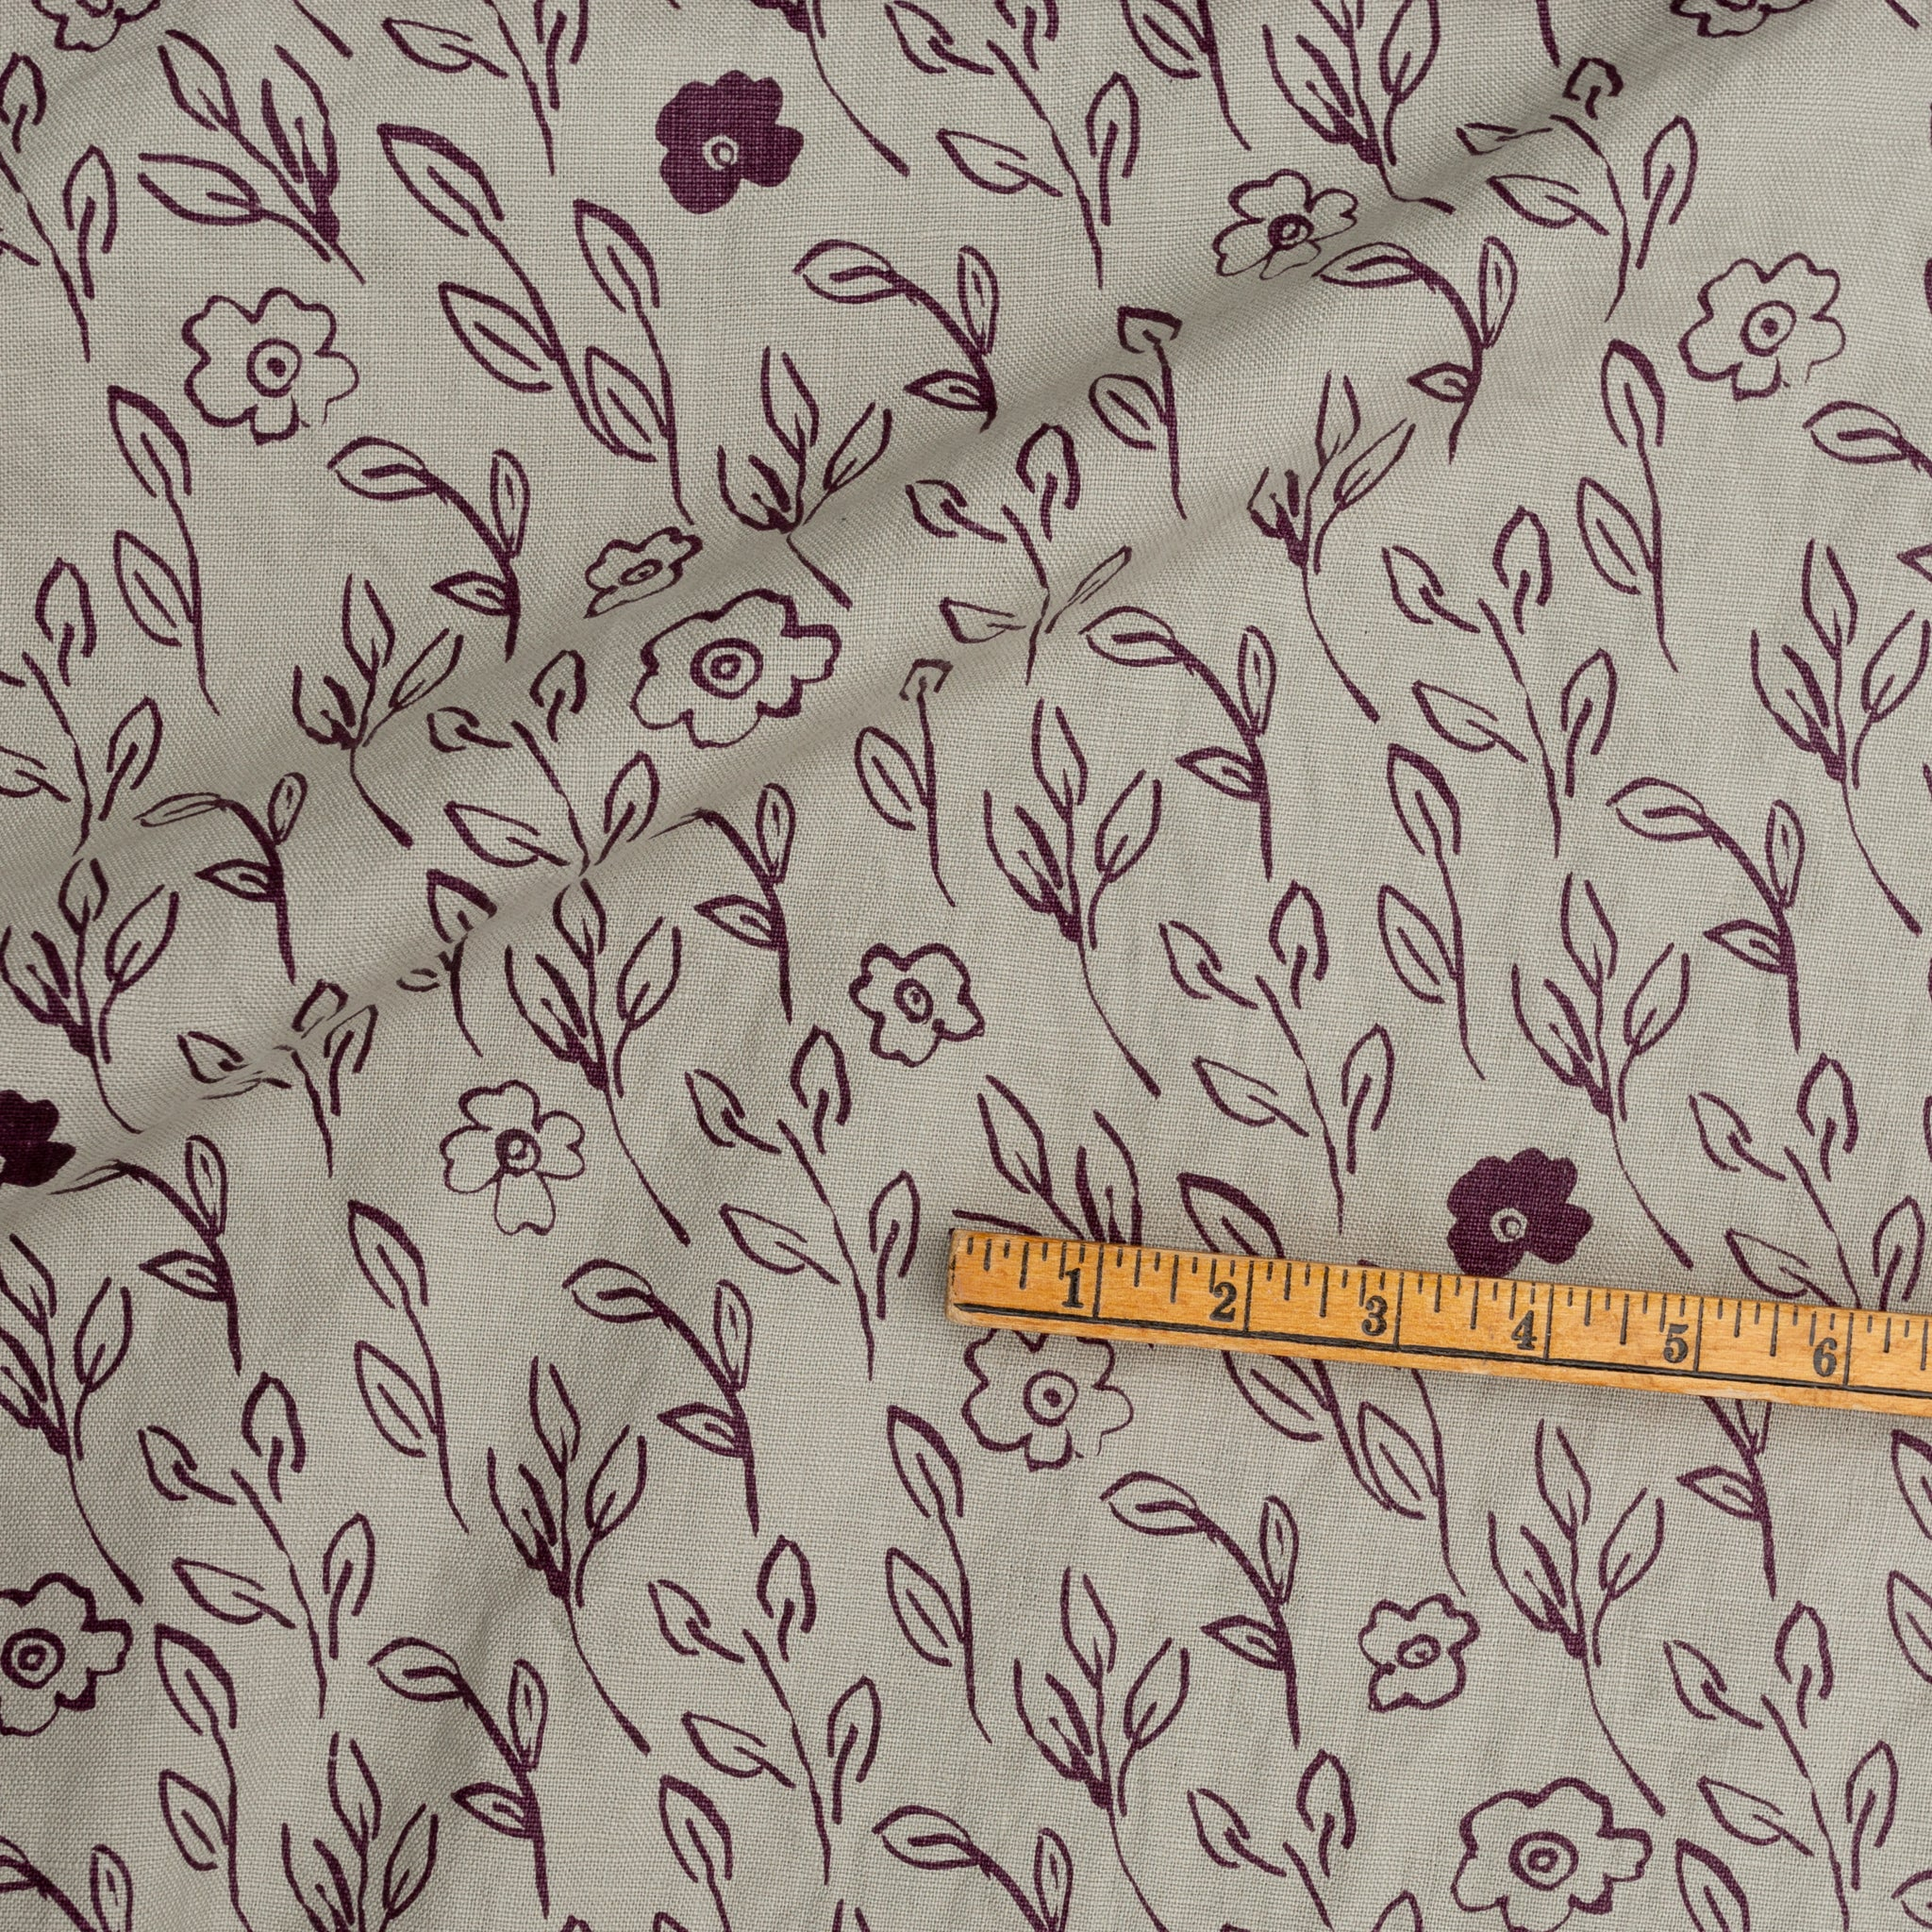 Screenprinted fabric yardage with leaves and flowers with yardstick